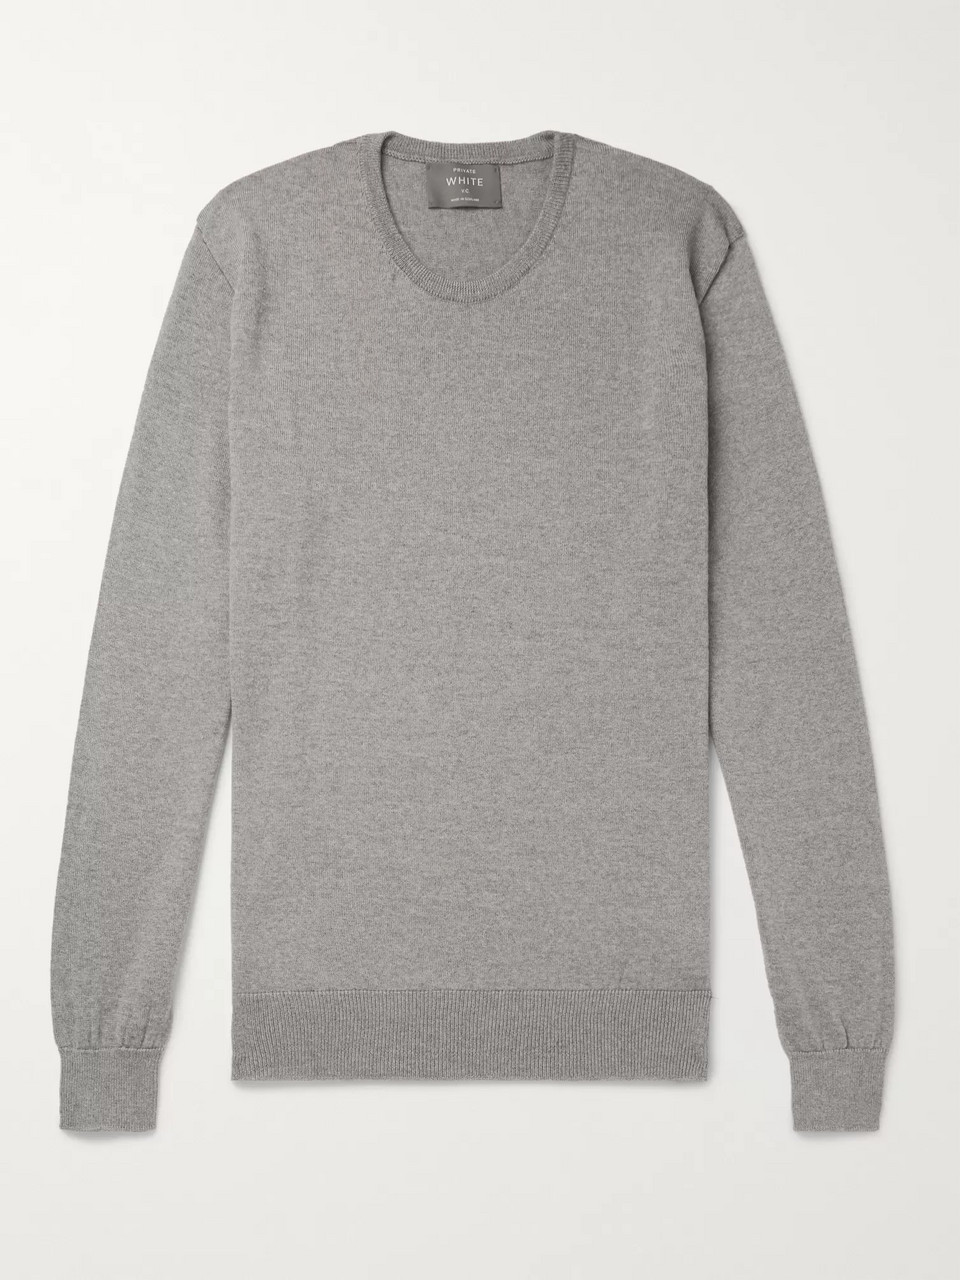 Private White V.C. + Woolmark Merino Wool Sweater